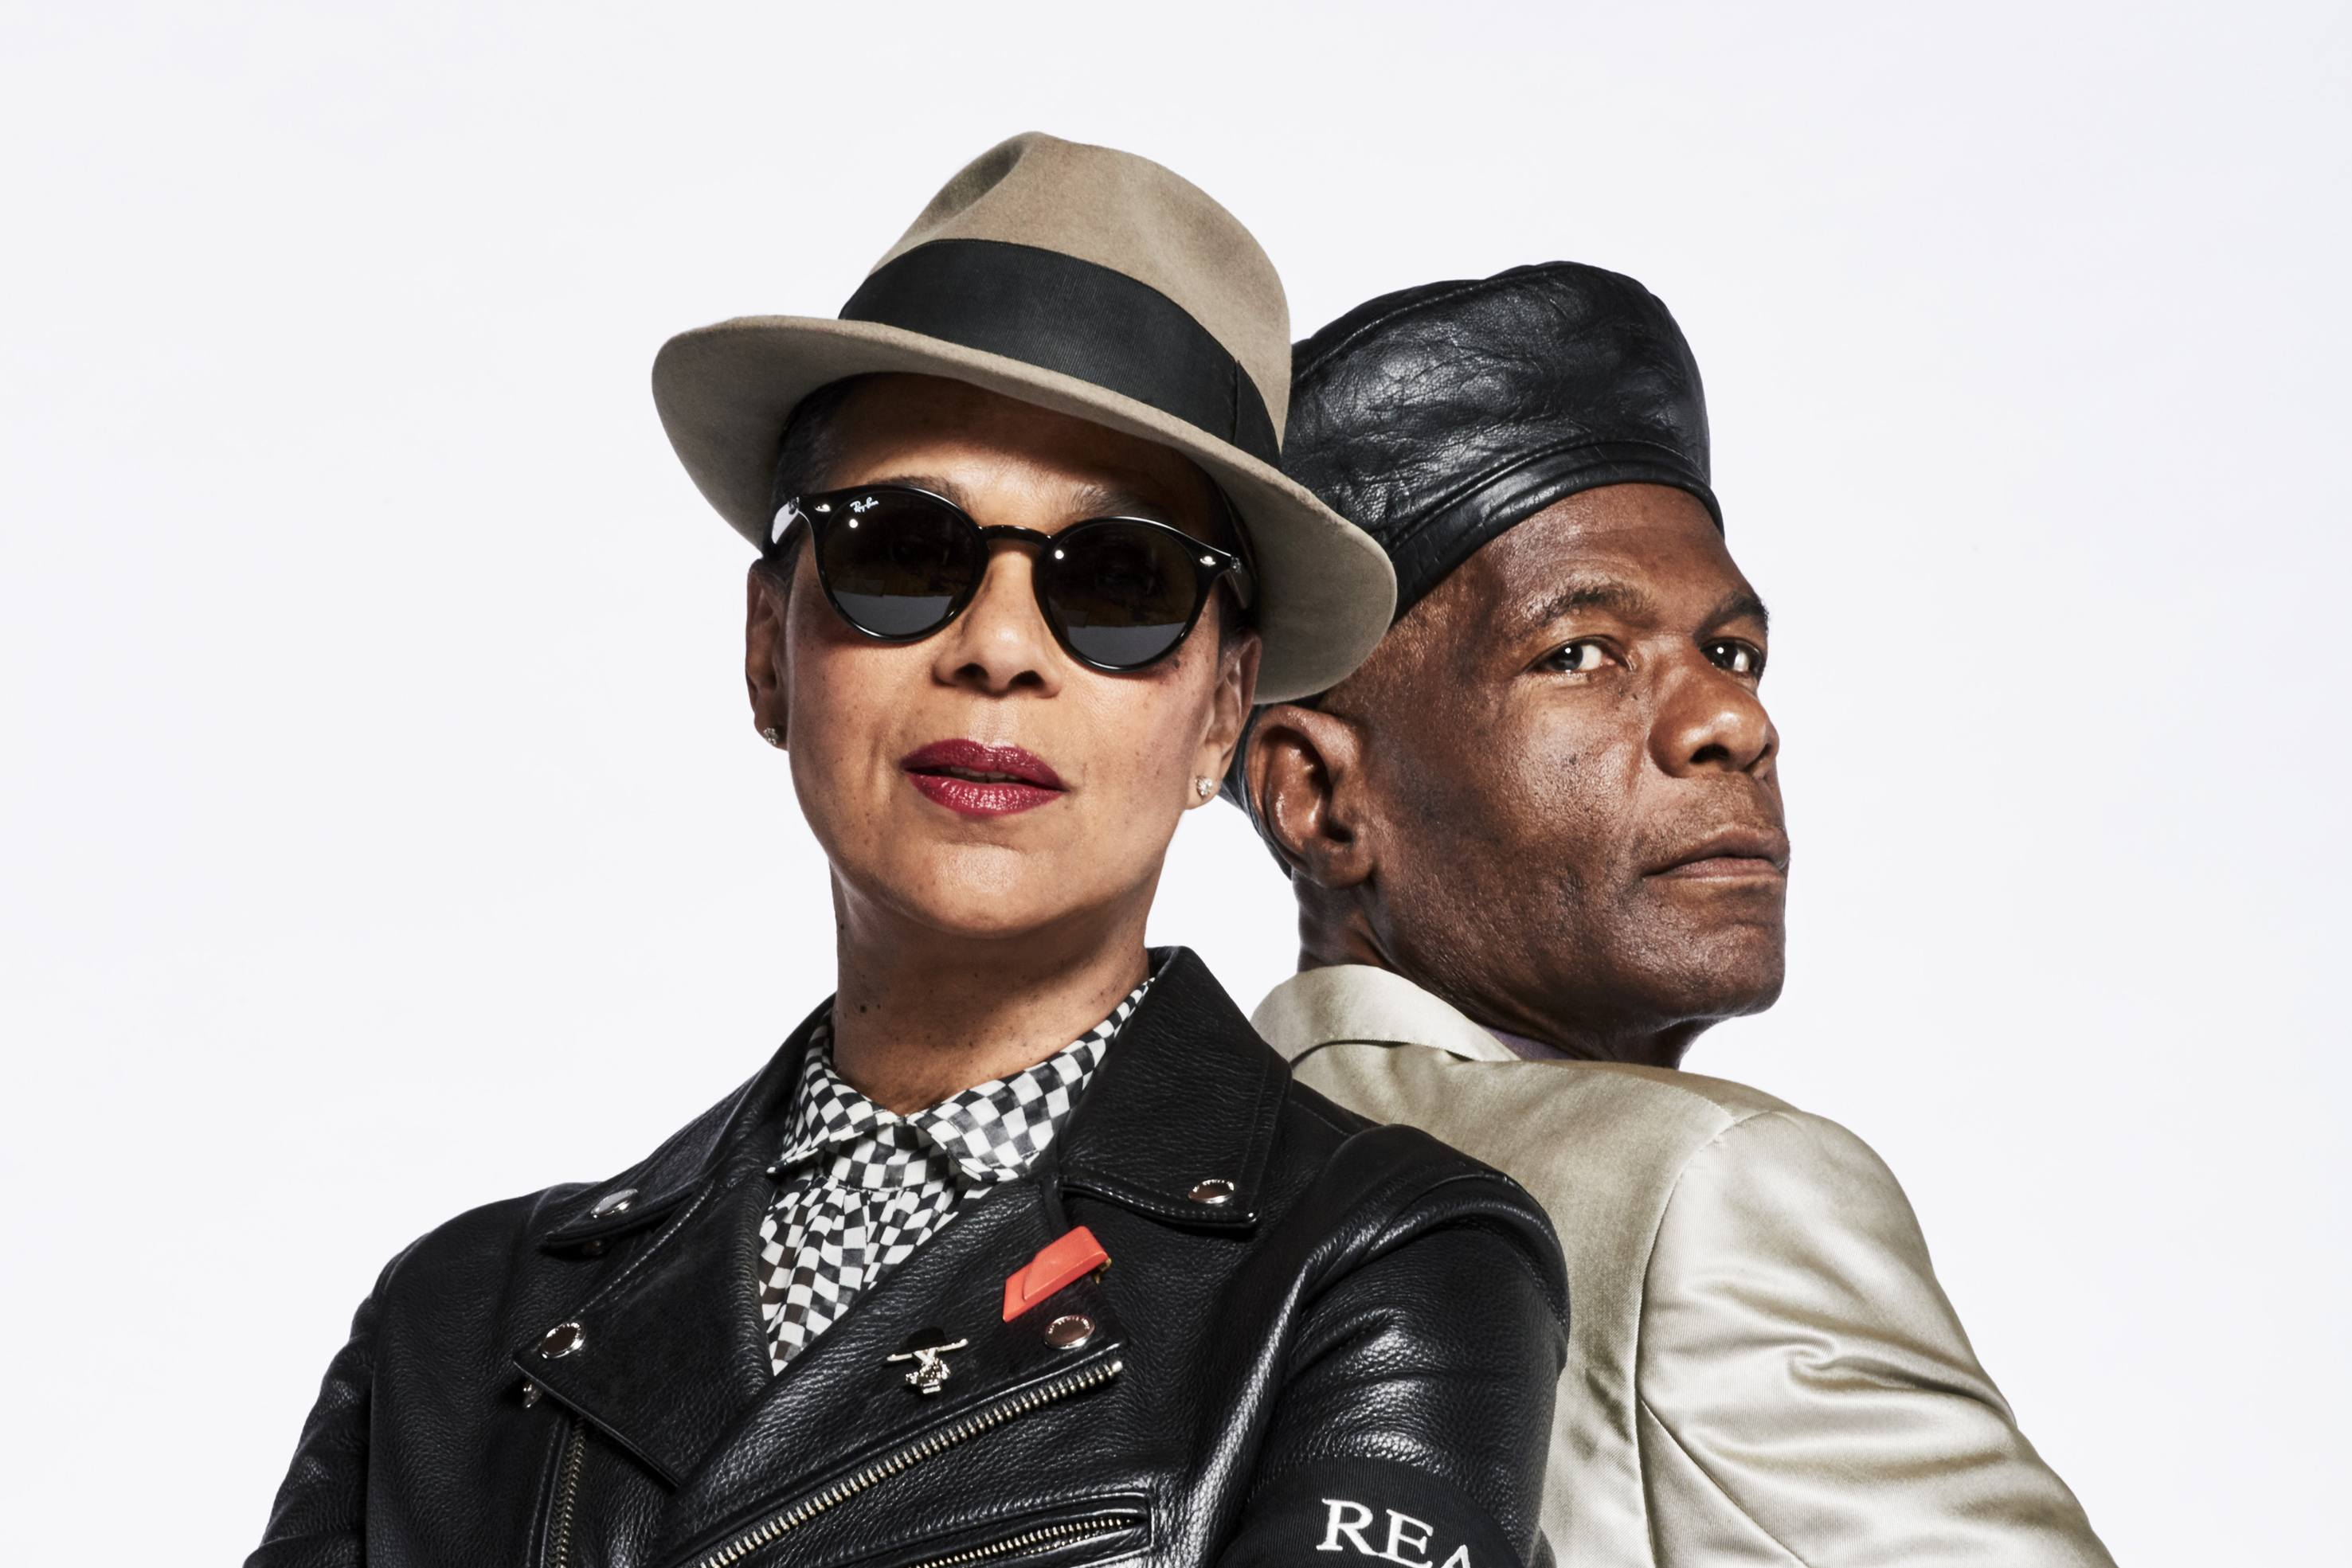 The Selecter image